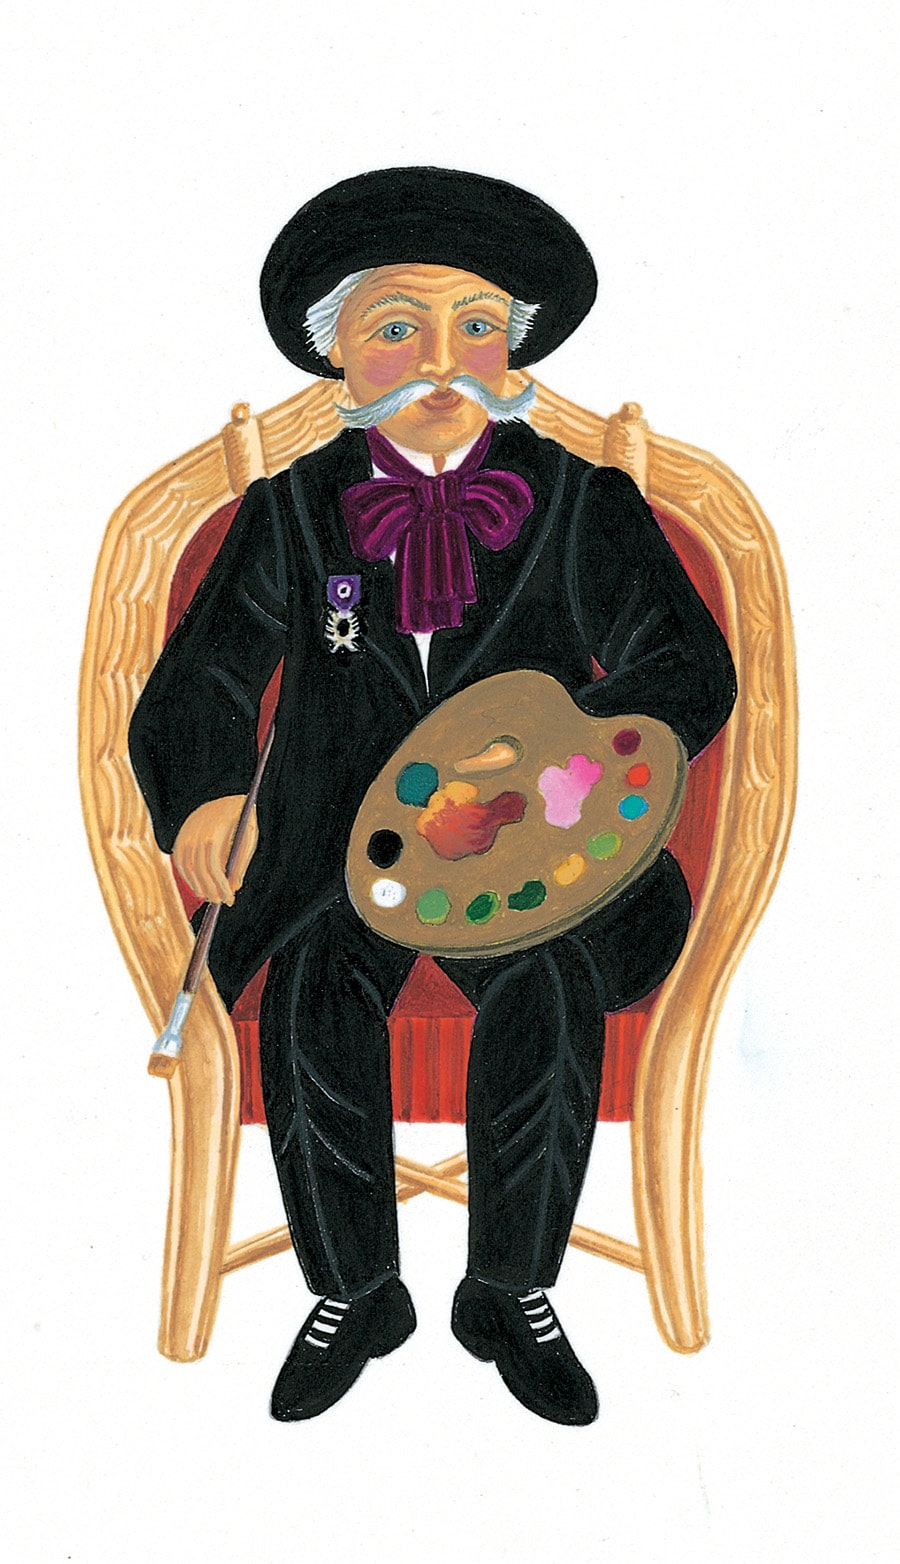 Illustration 29 'The remarkable and gifted Monsieur Henri Rousseau' (Pixel dimensions available w822 x h1466)